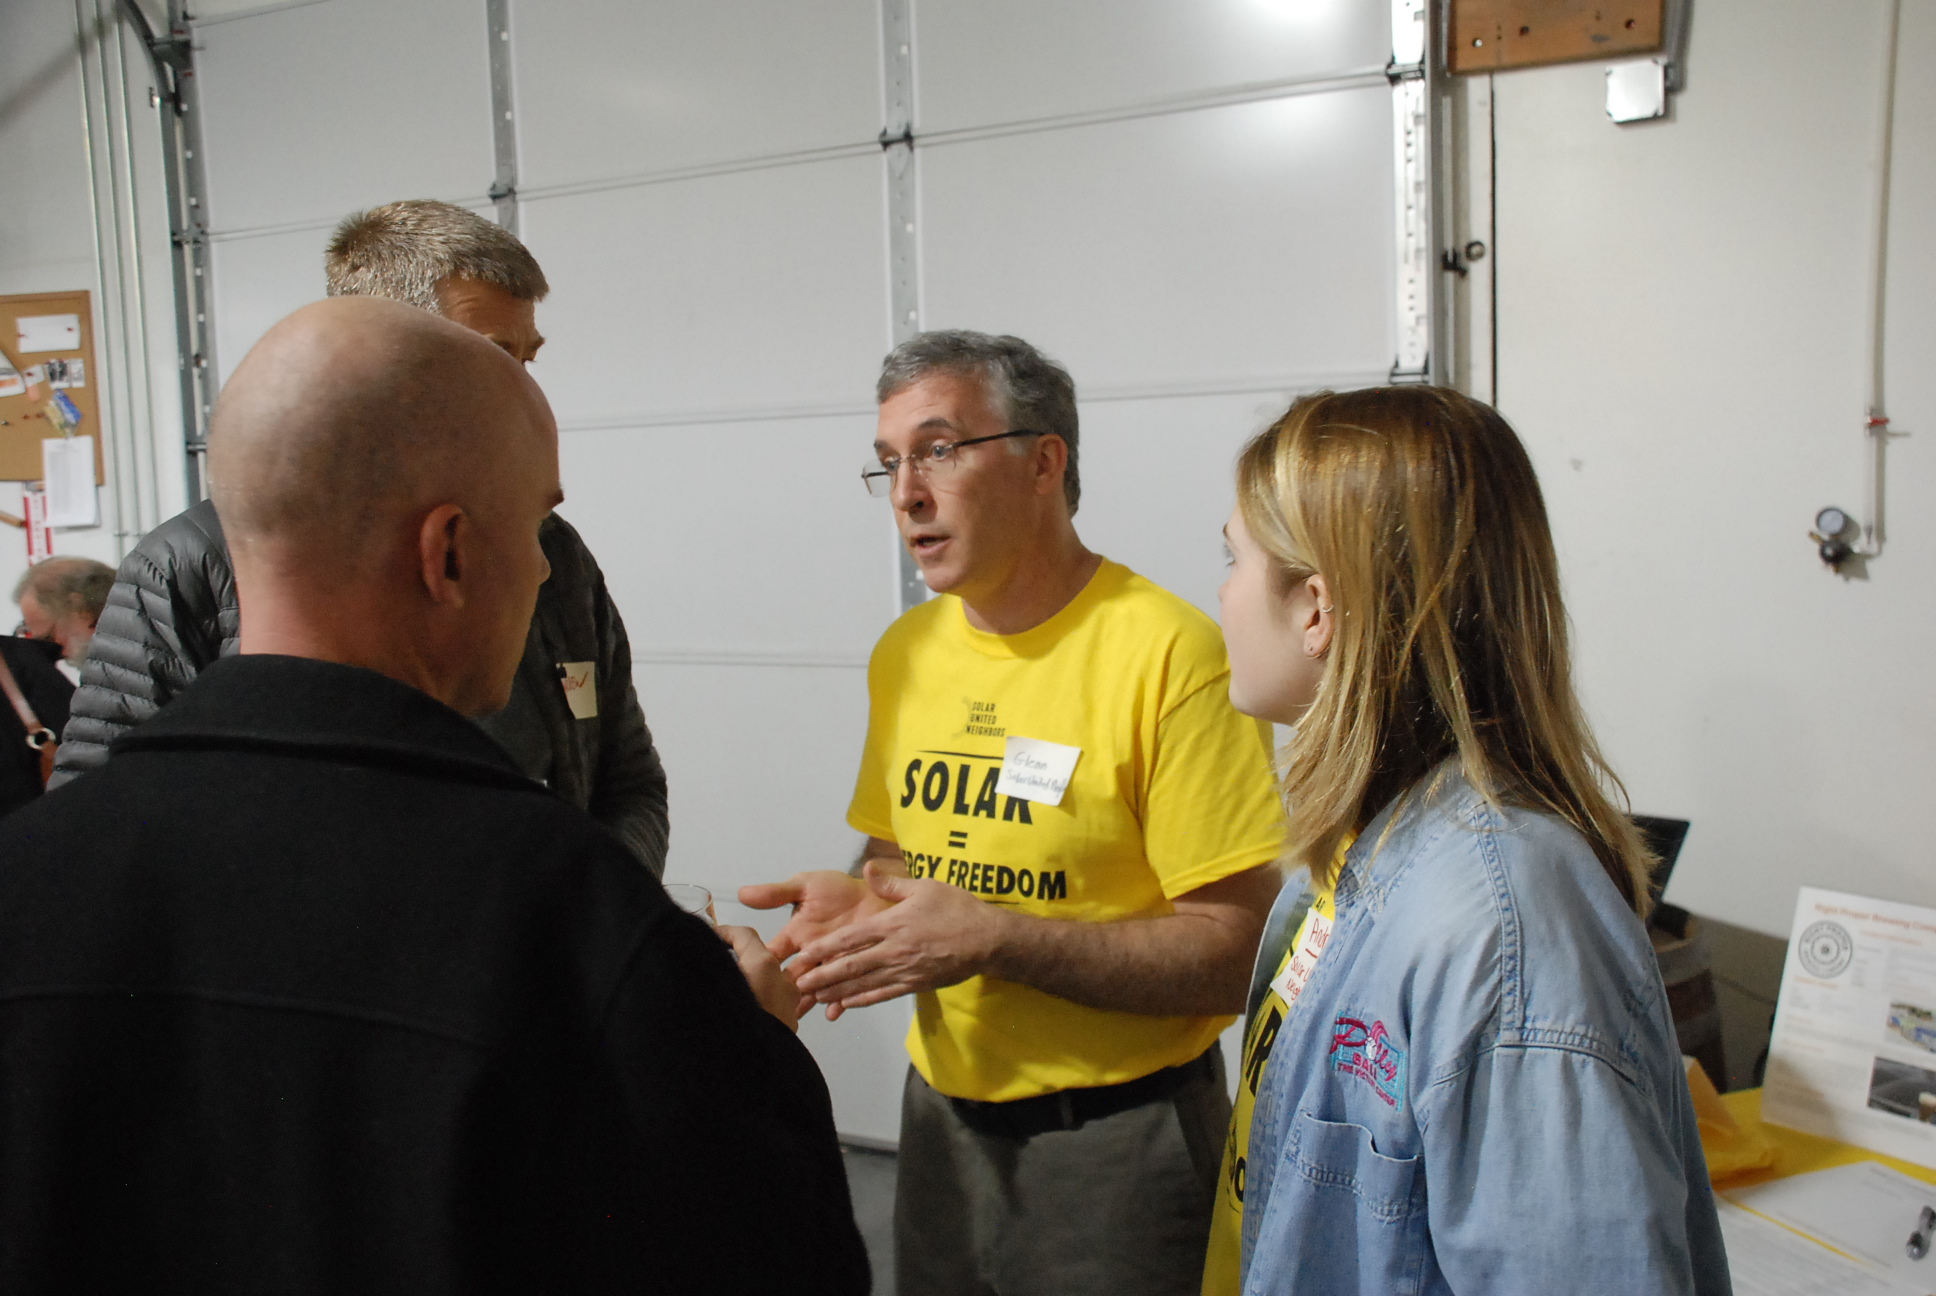 Solar supporters learn about going solar